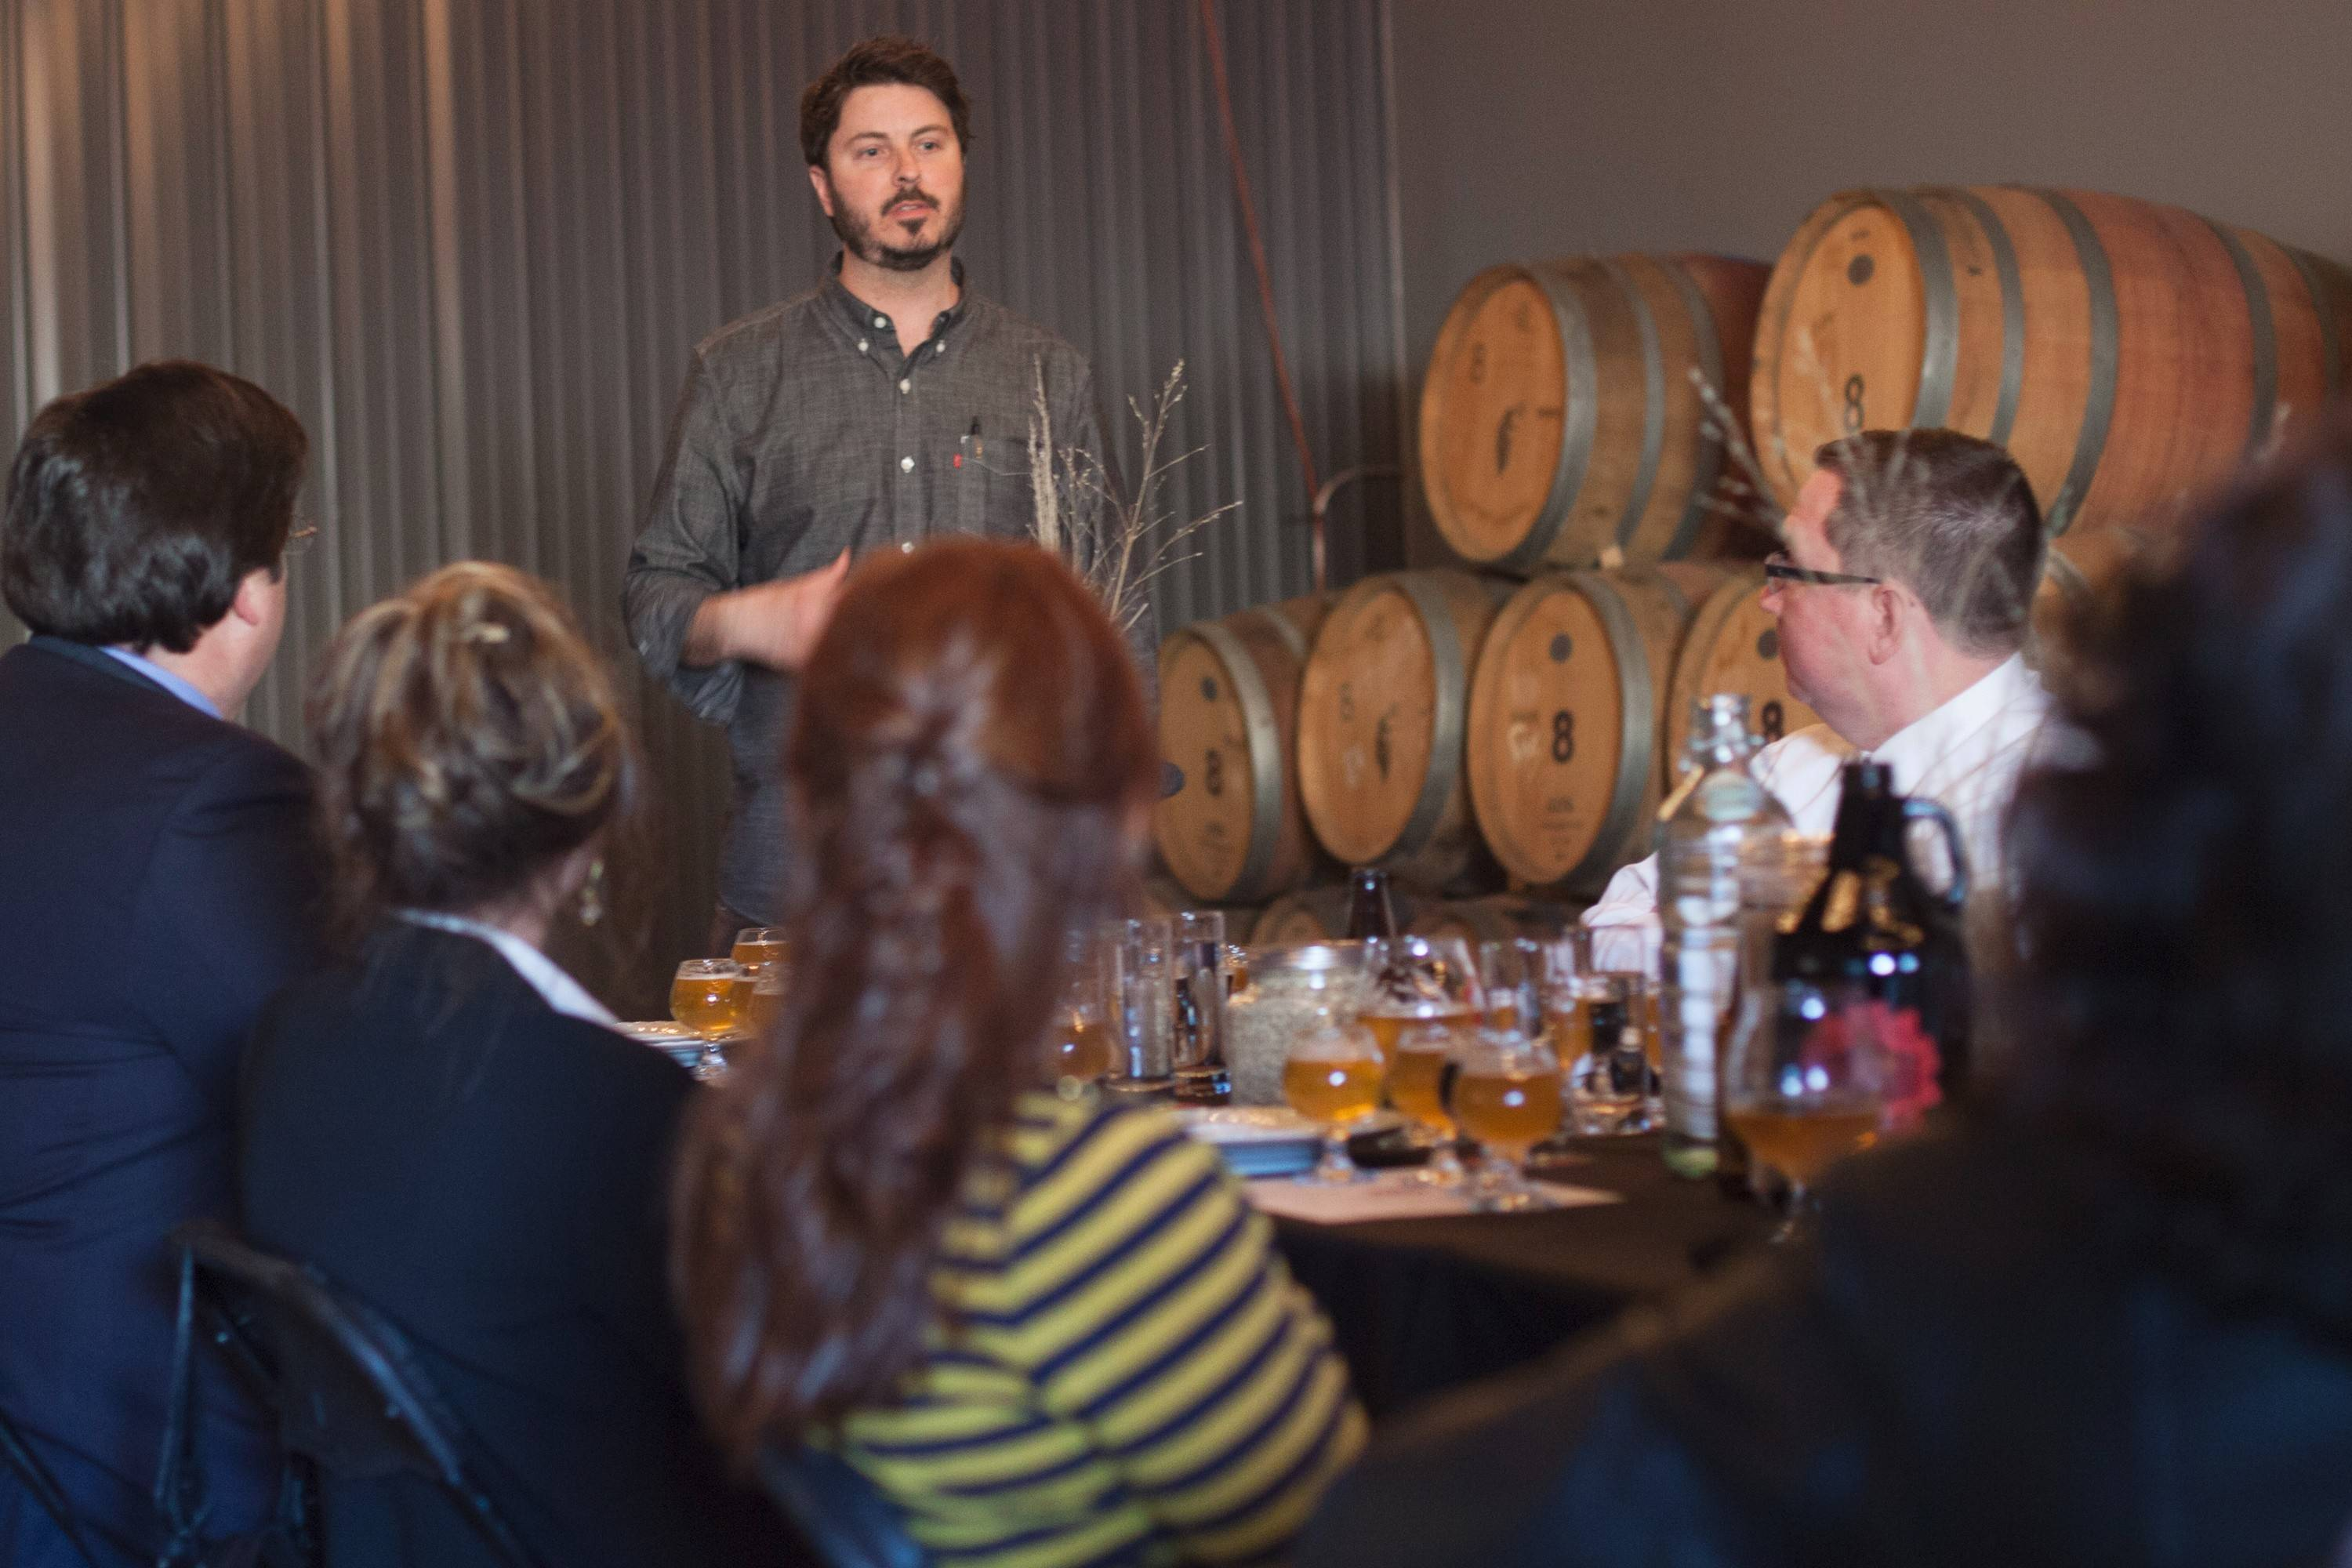 Penrose Brewing Company founder Eric Hobbs leads guests through a guided tasting of a flight of beers in the brewery's barrel cellar.